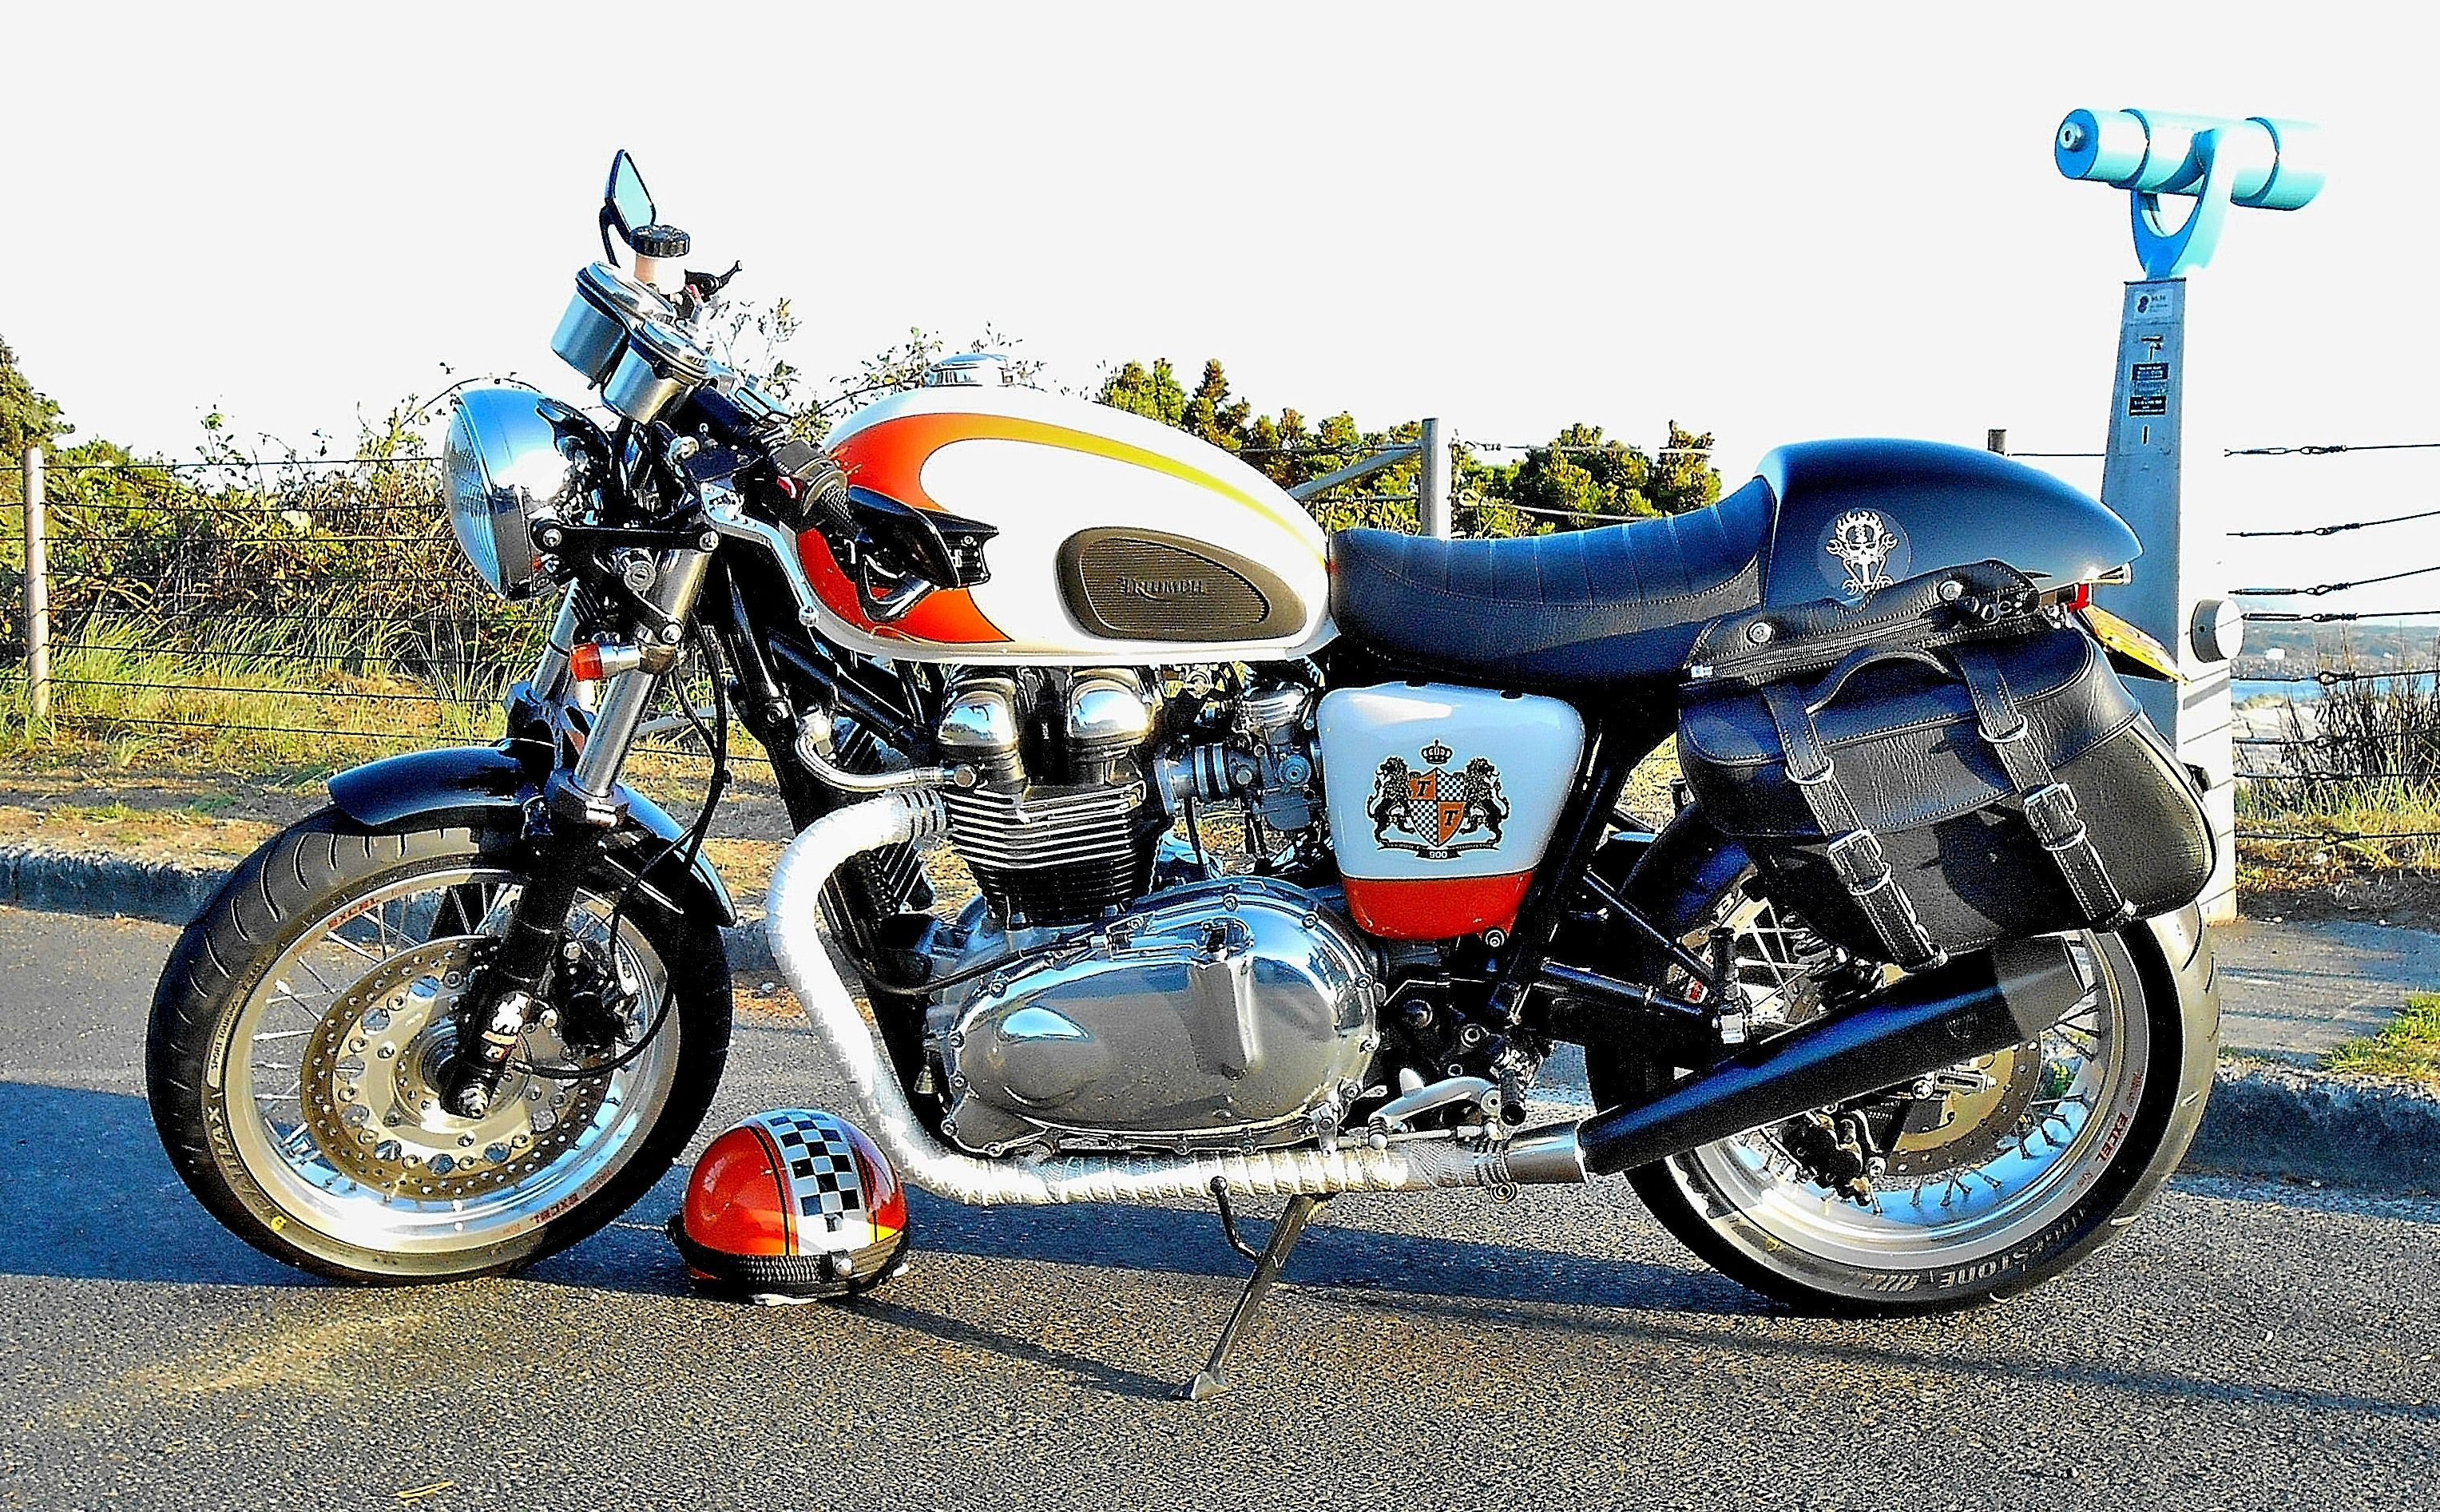 hight resolution of thruxton with saddlebags added for light touring